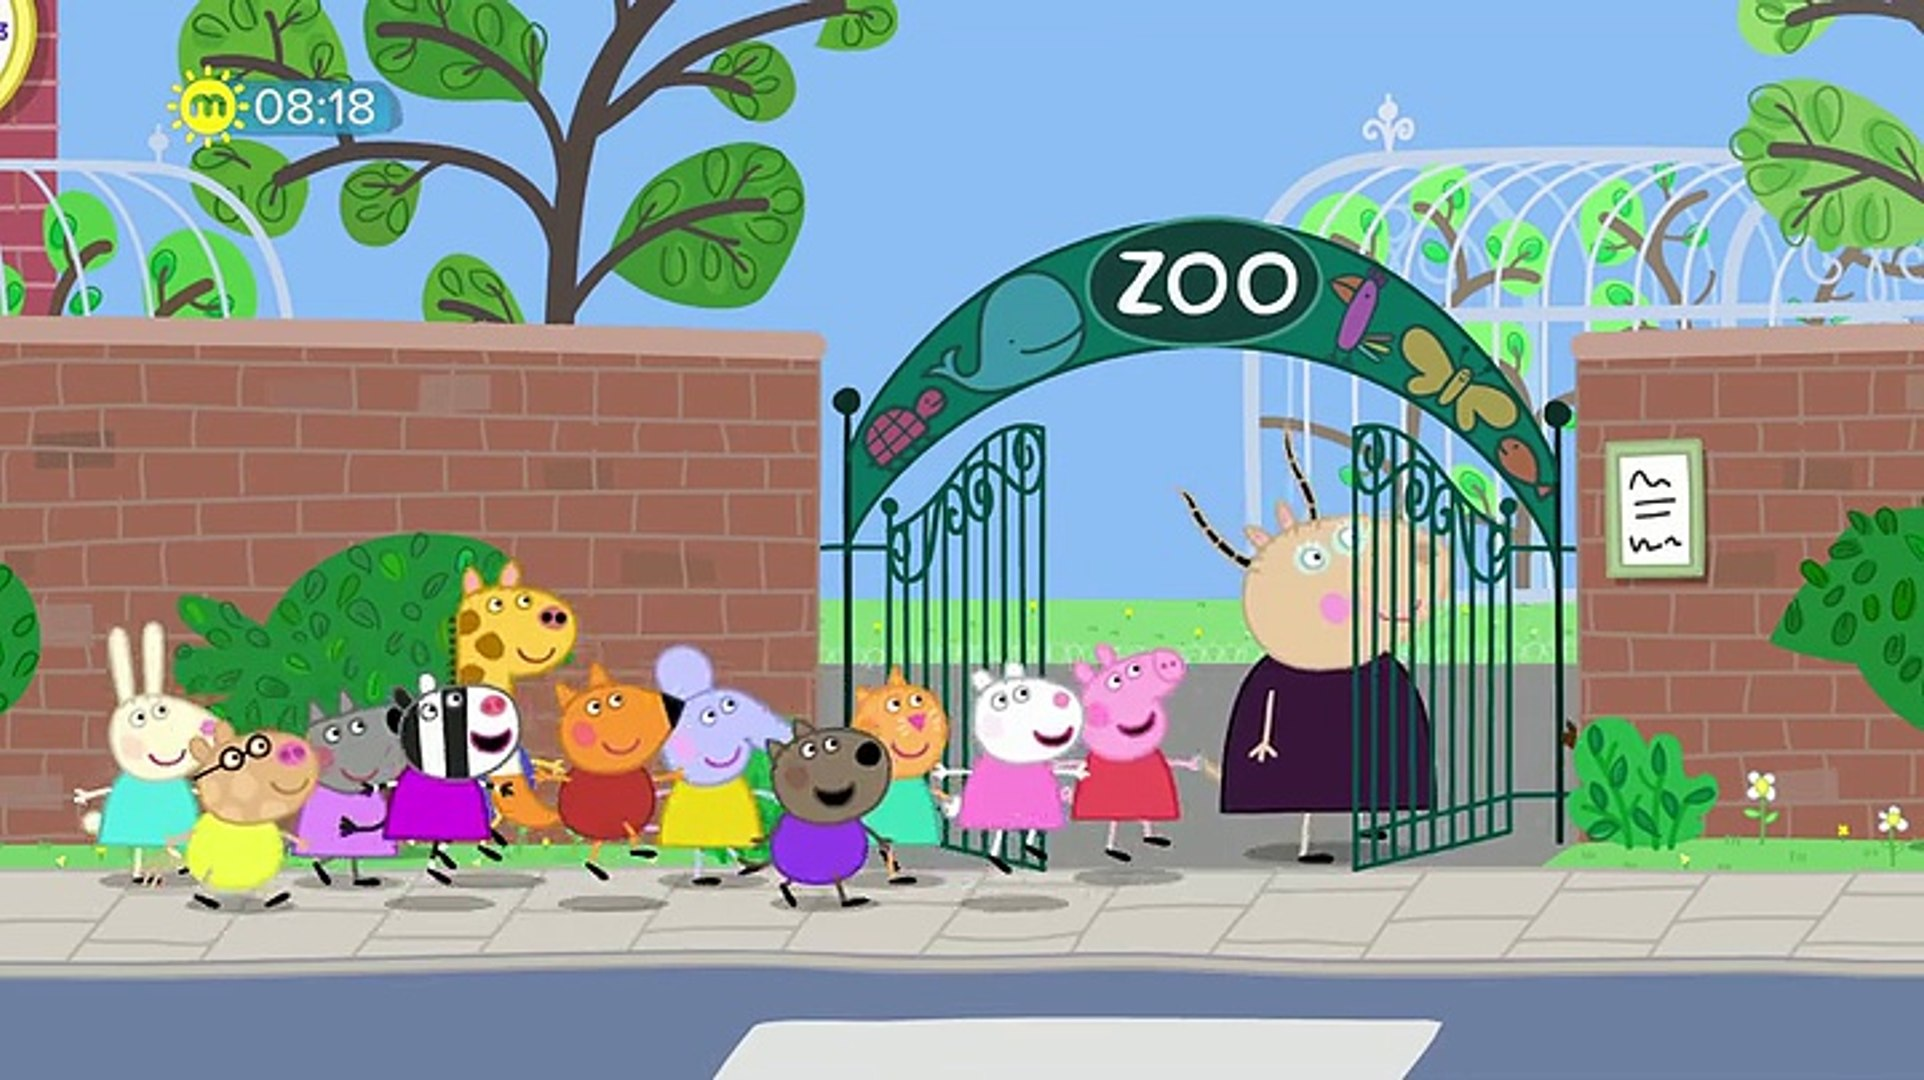 Peppa Pig S05e17 The Zoo